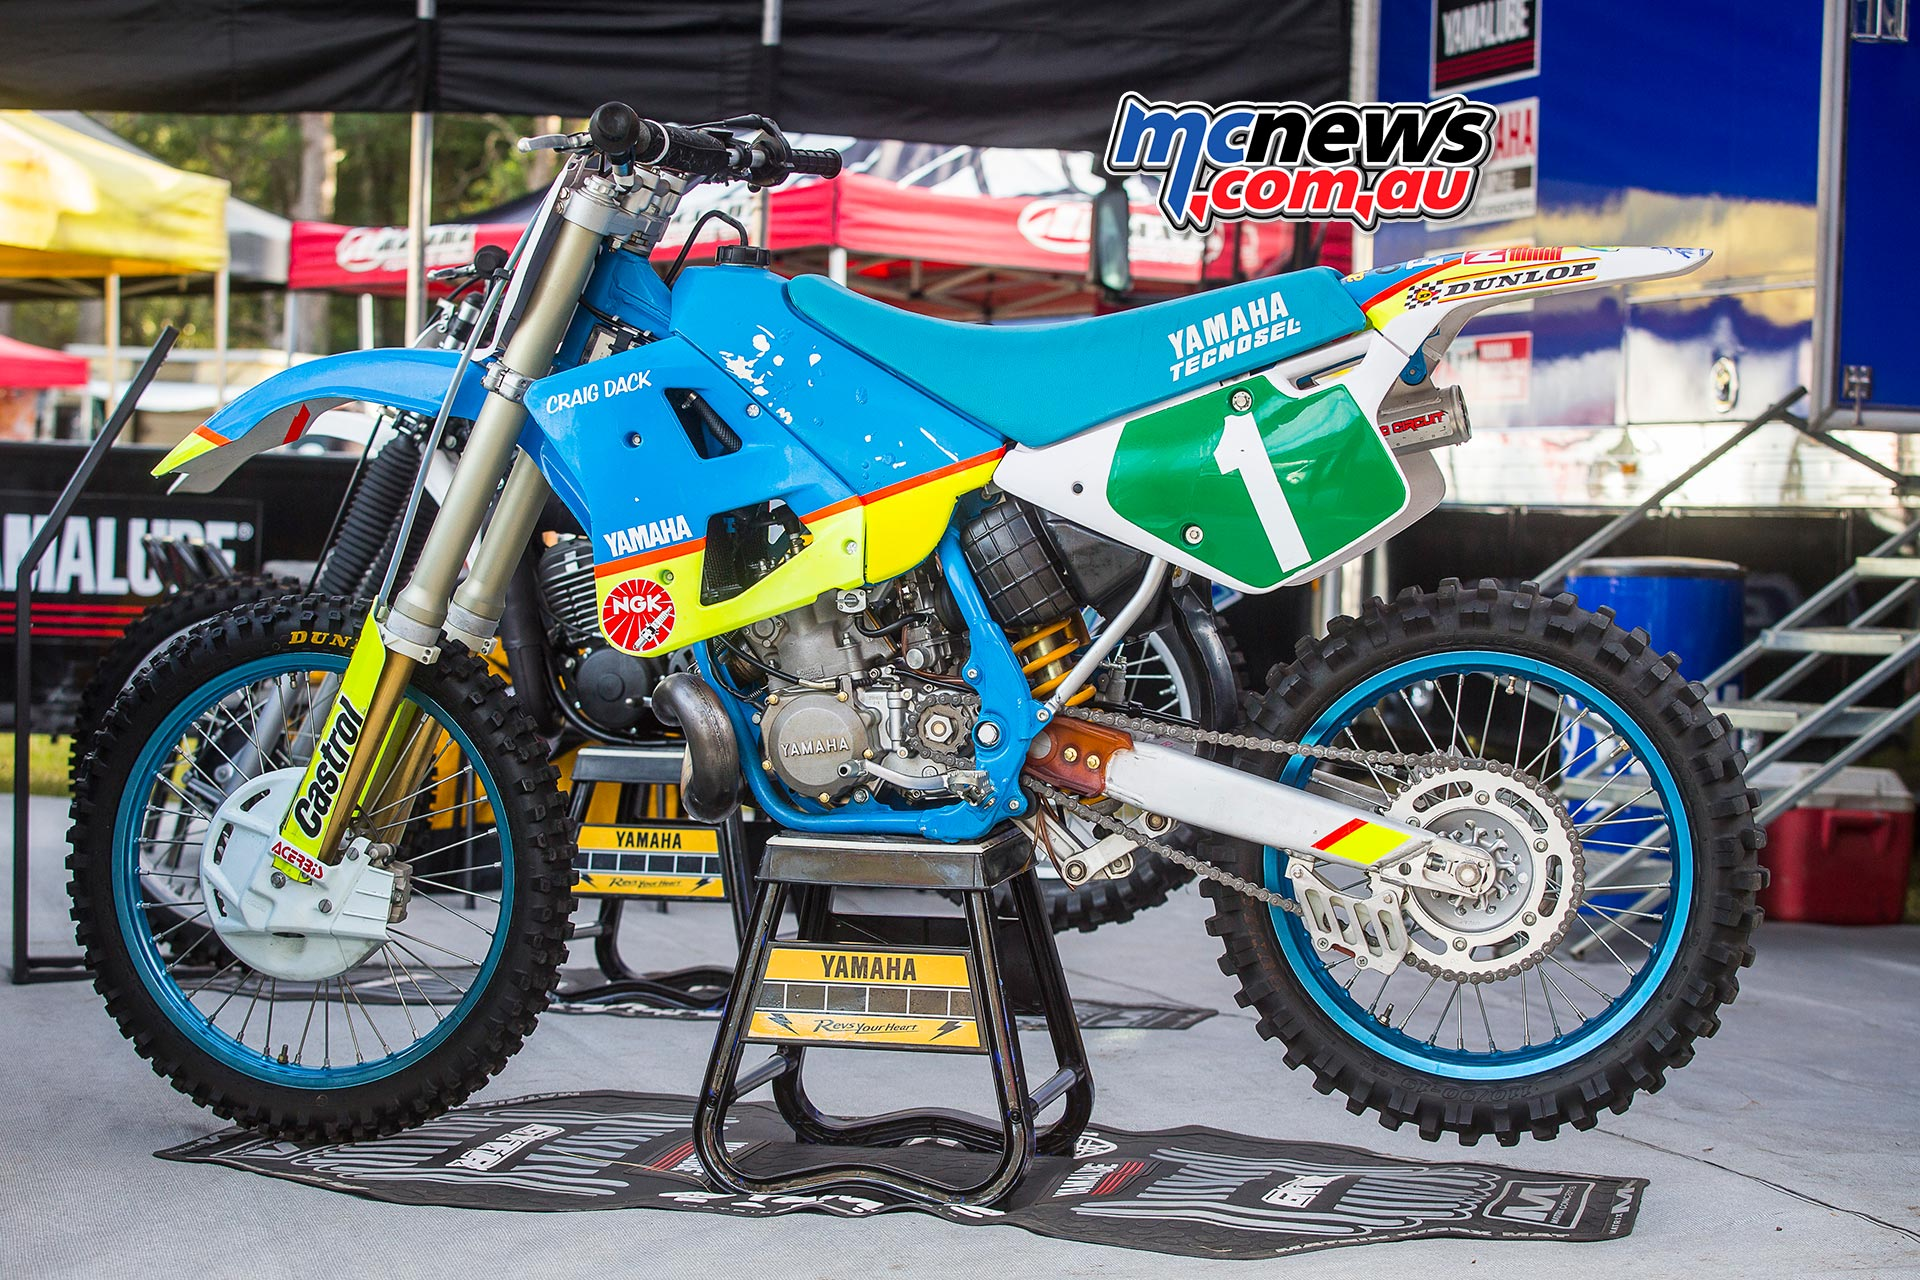 Classic Dirt 2016 - Craig Dack's Championship winning Yamaha YZ250 - Image by Greg Smith